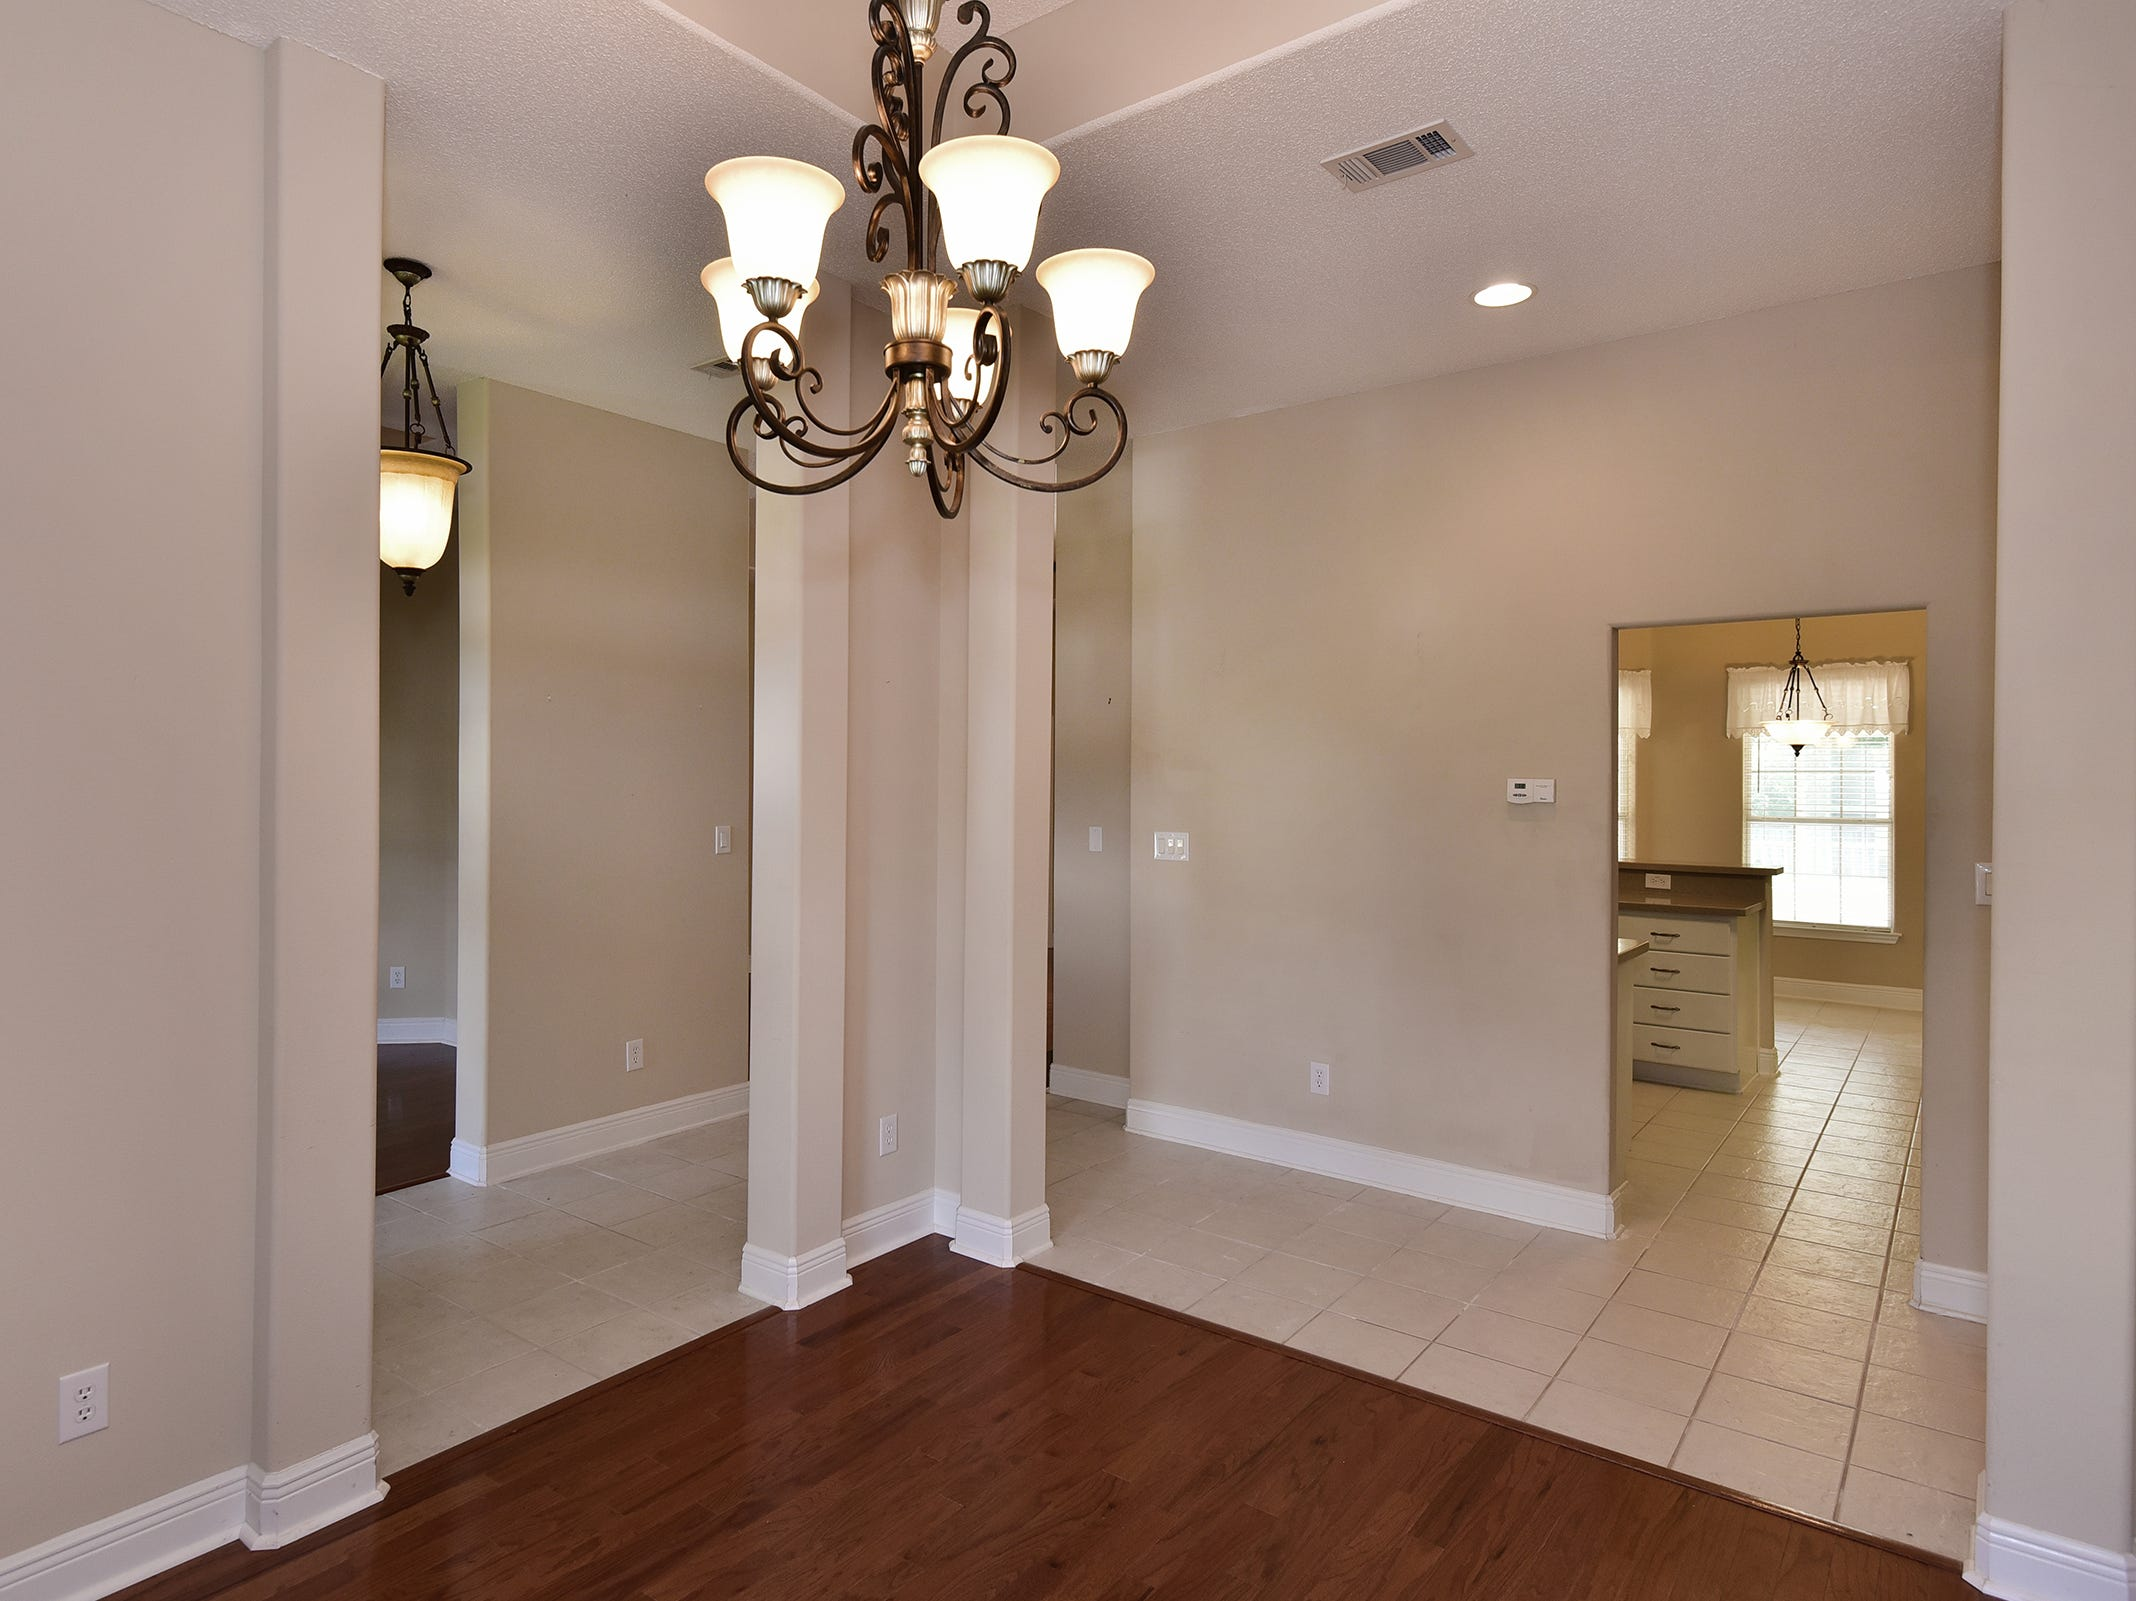 2363 Queens Ferry LaneThe formal dining space.